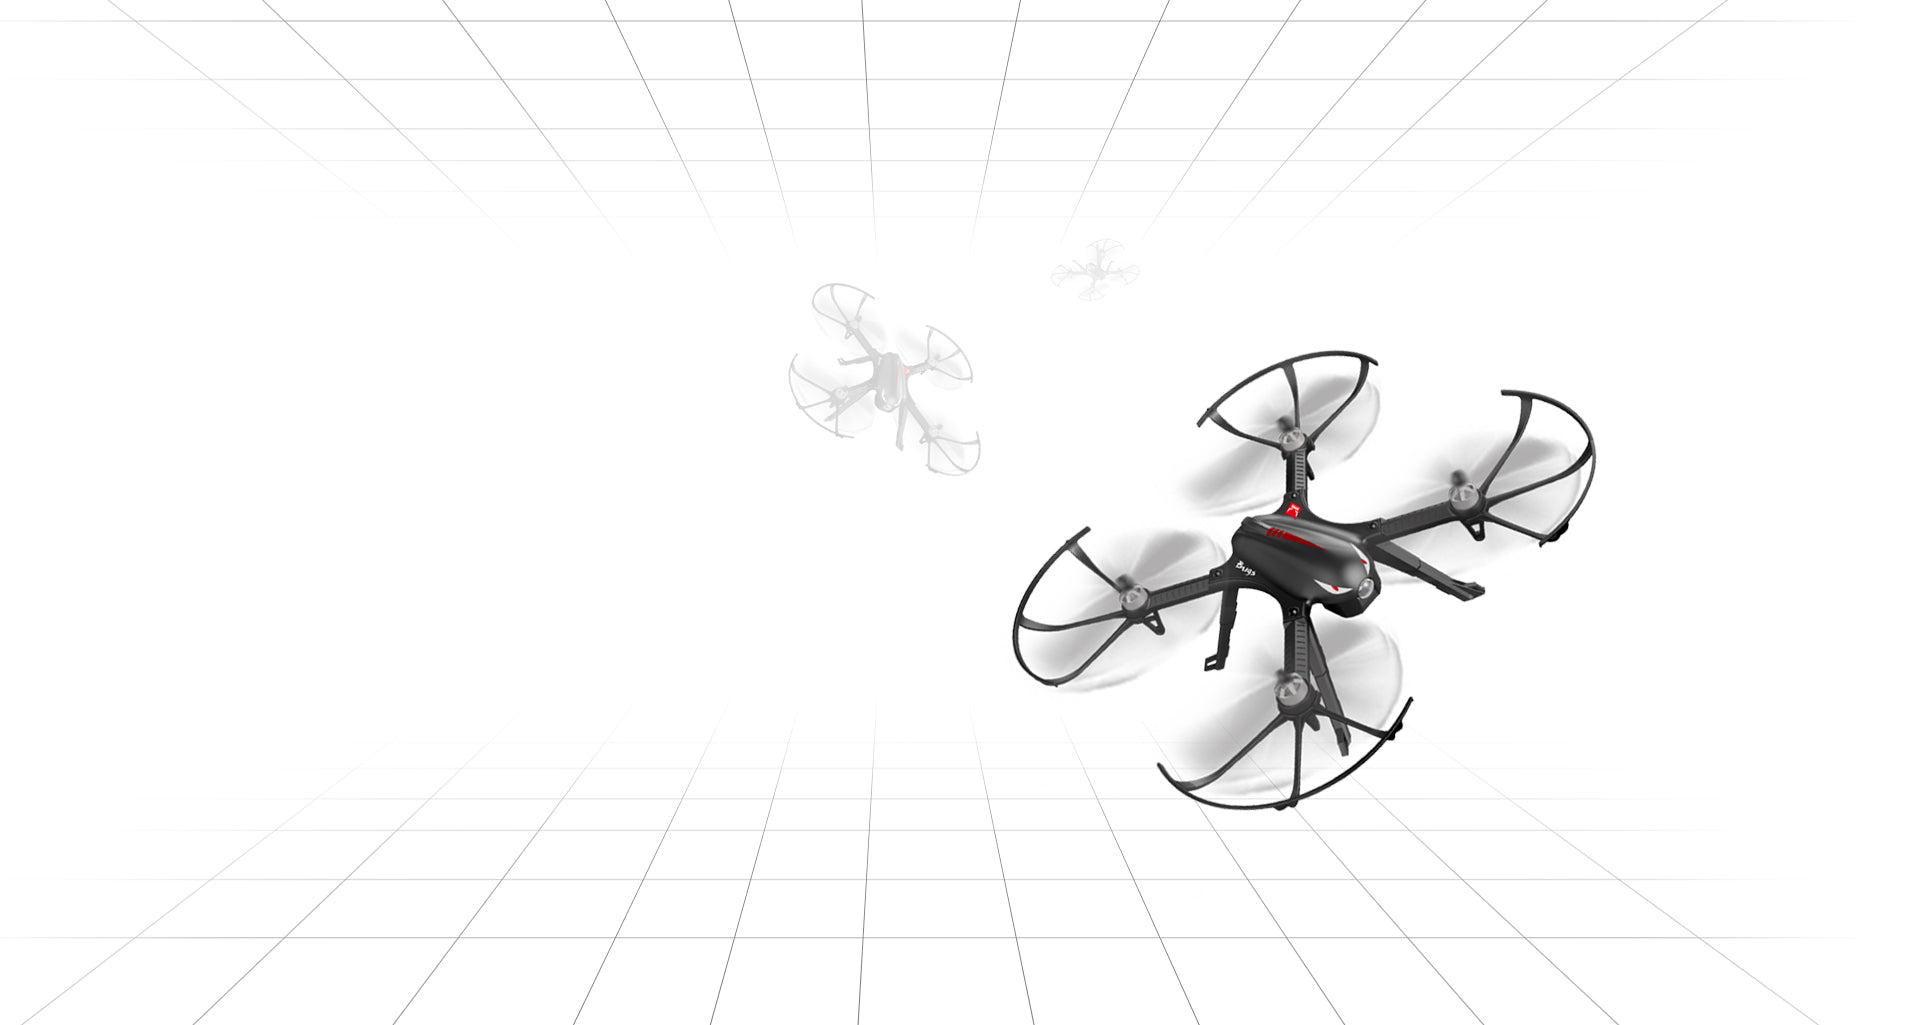 MJX Bugs 3 Brushless Quadcopter